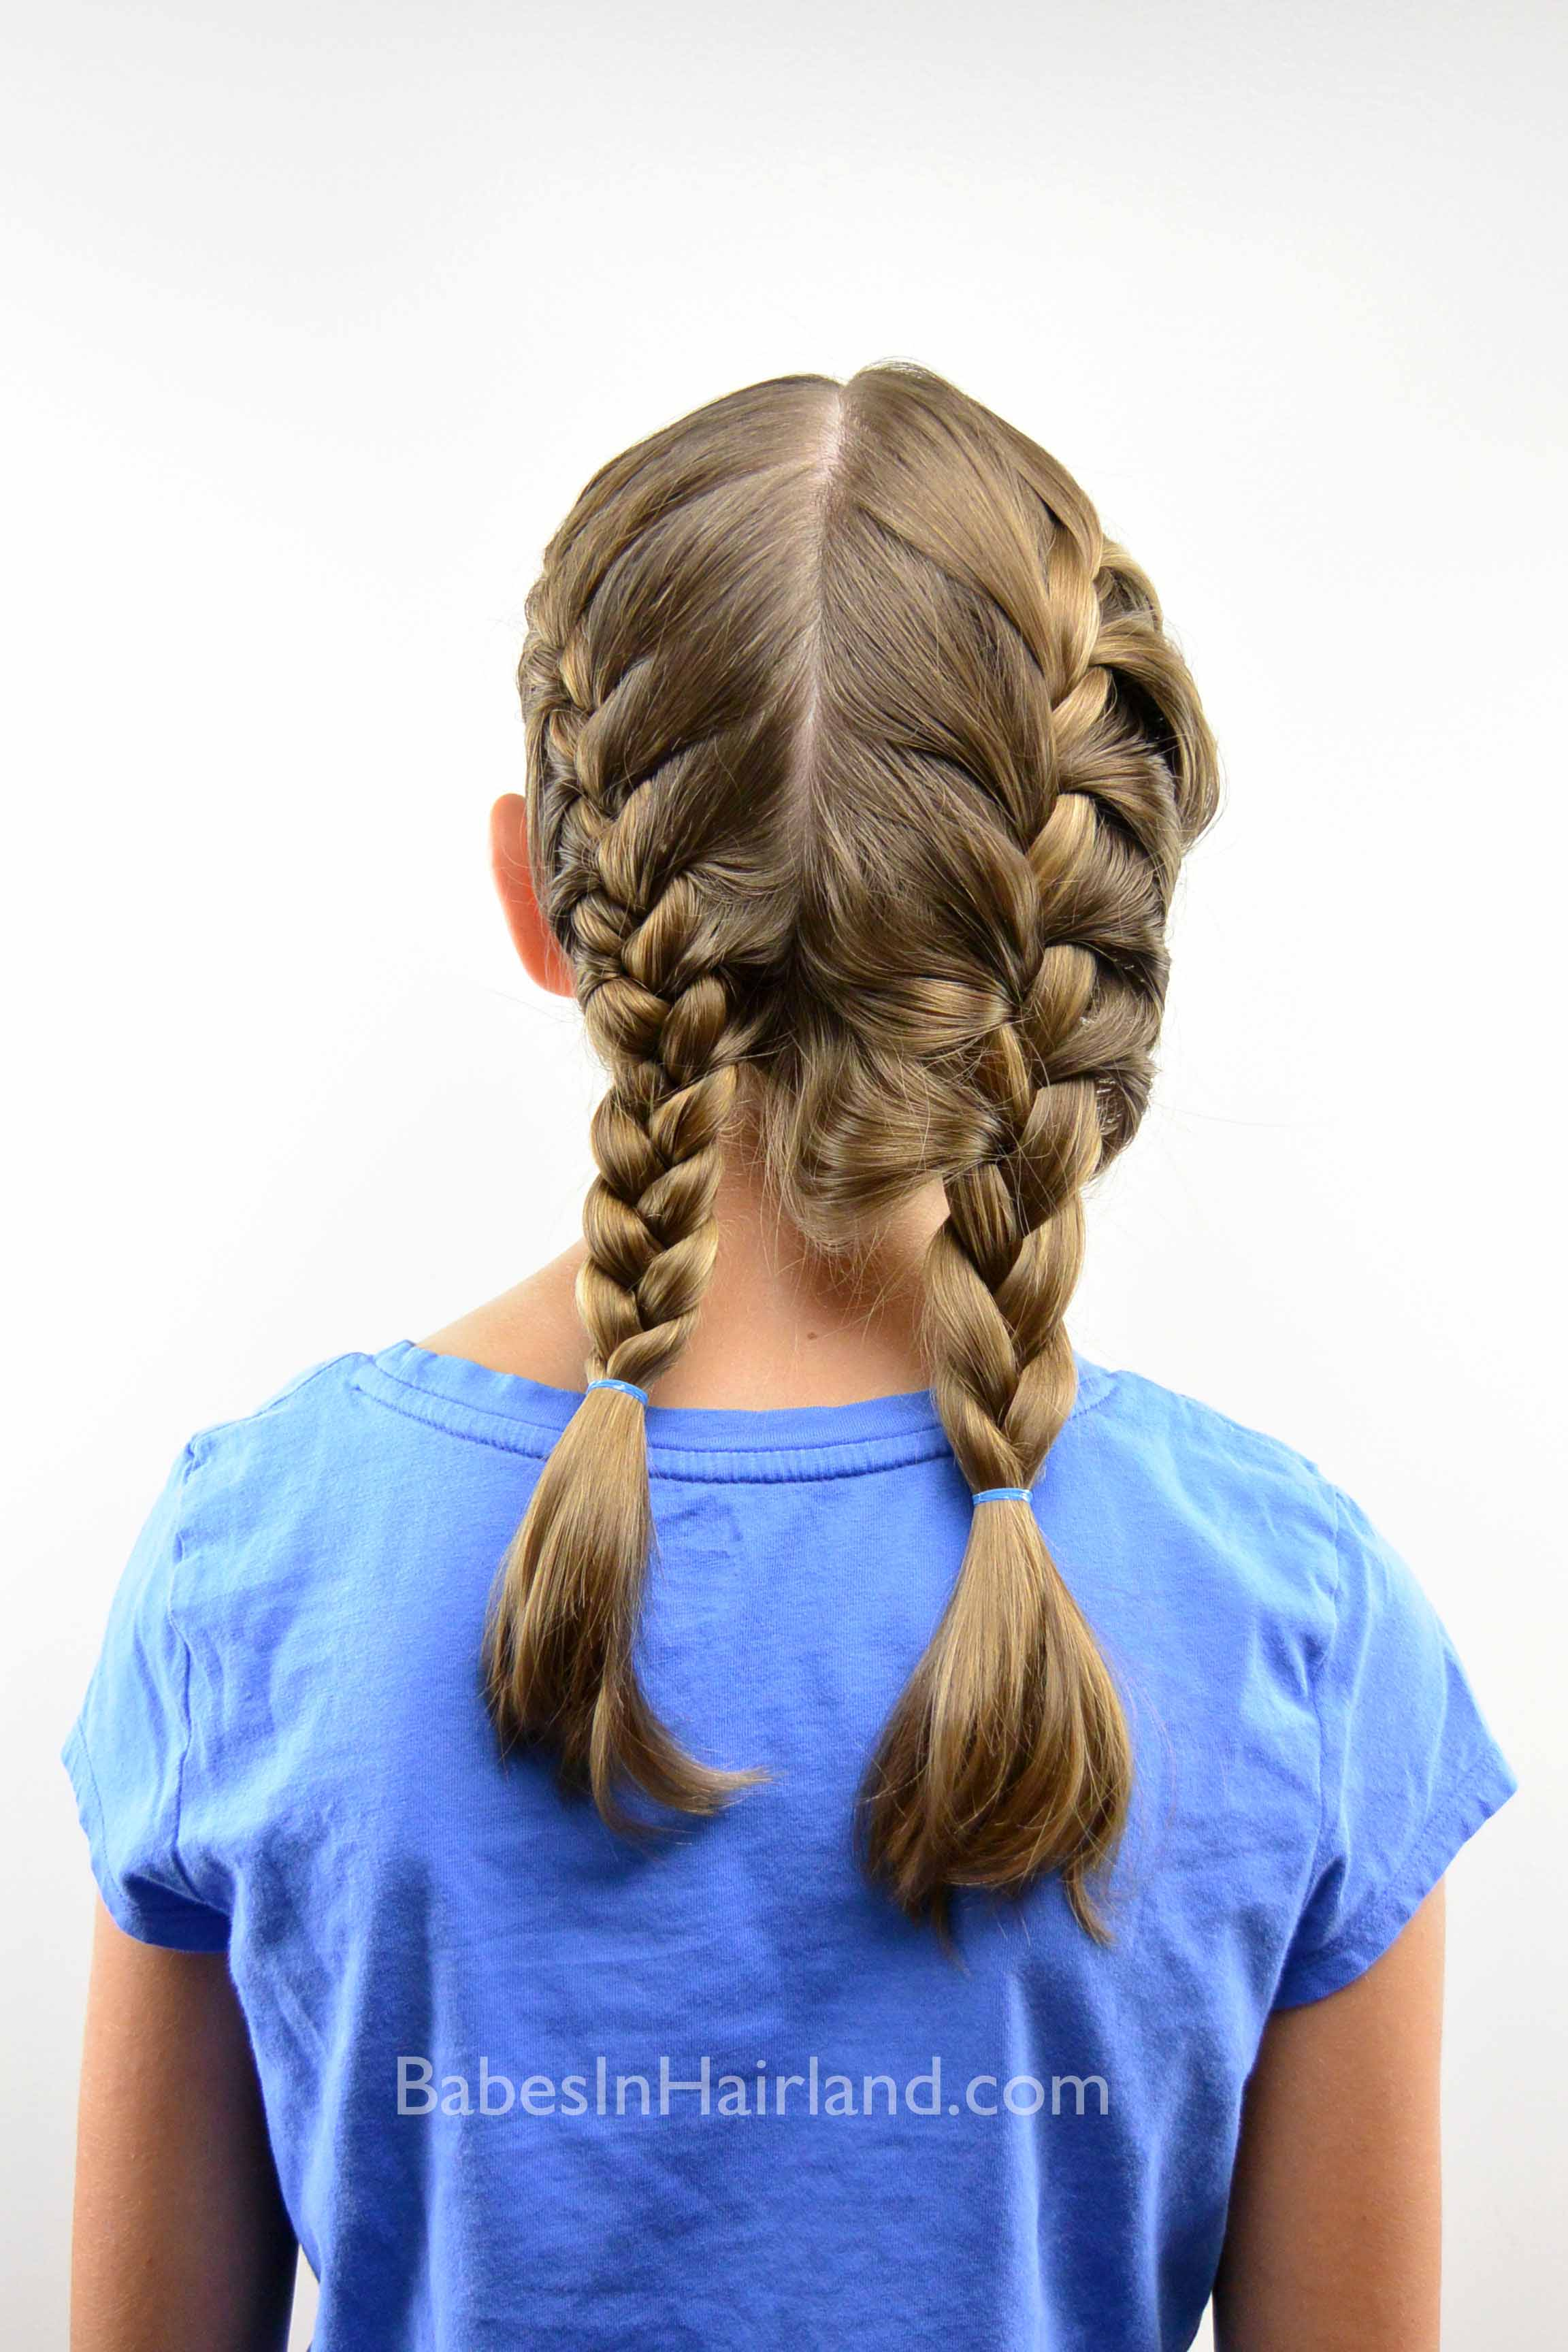 How To Get A Tight French Braid From Babesinhairland #frenchbraid  #hairtips